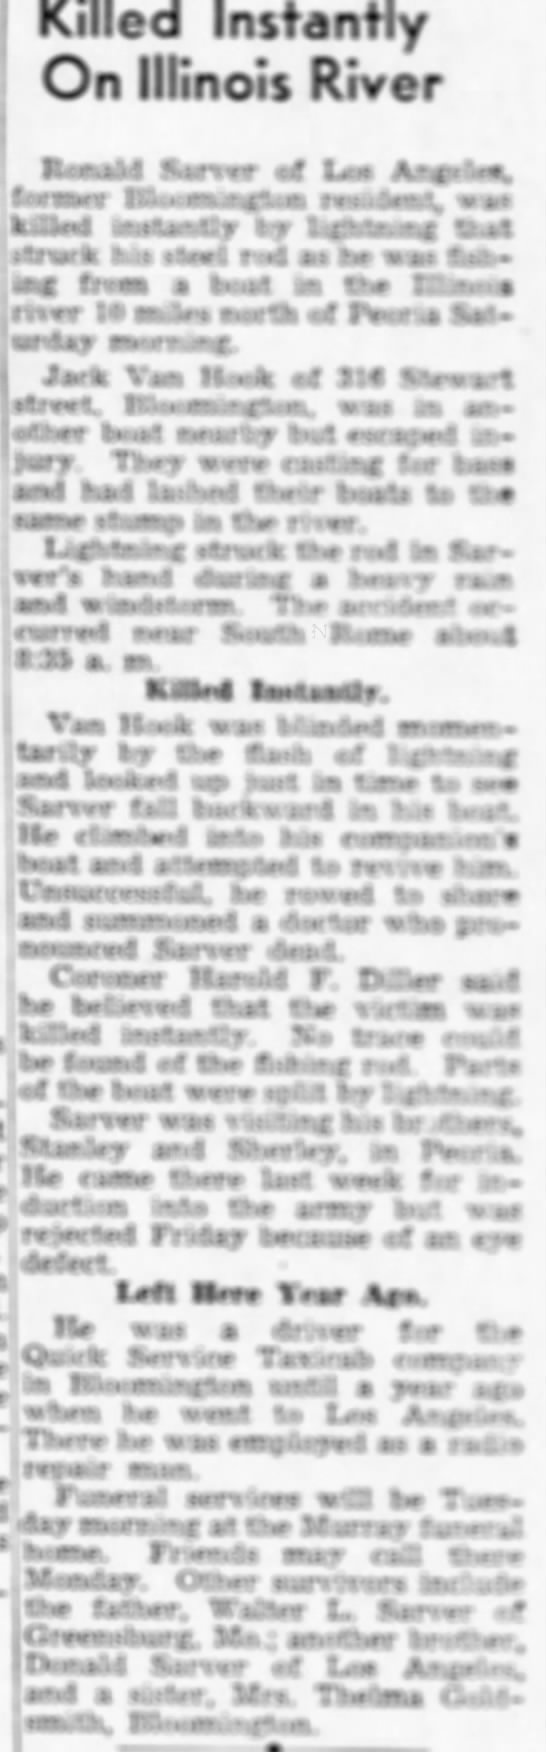 Ronald Sarver Death Article 1942 -